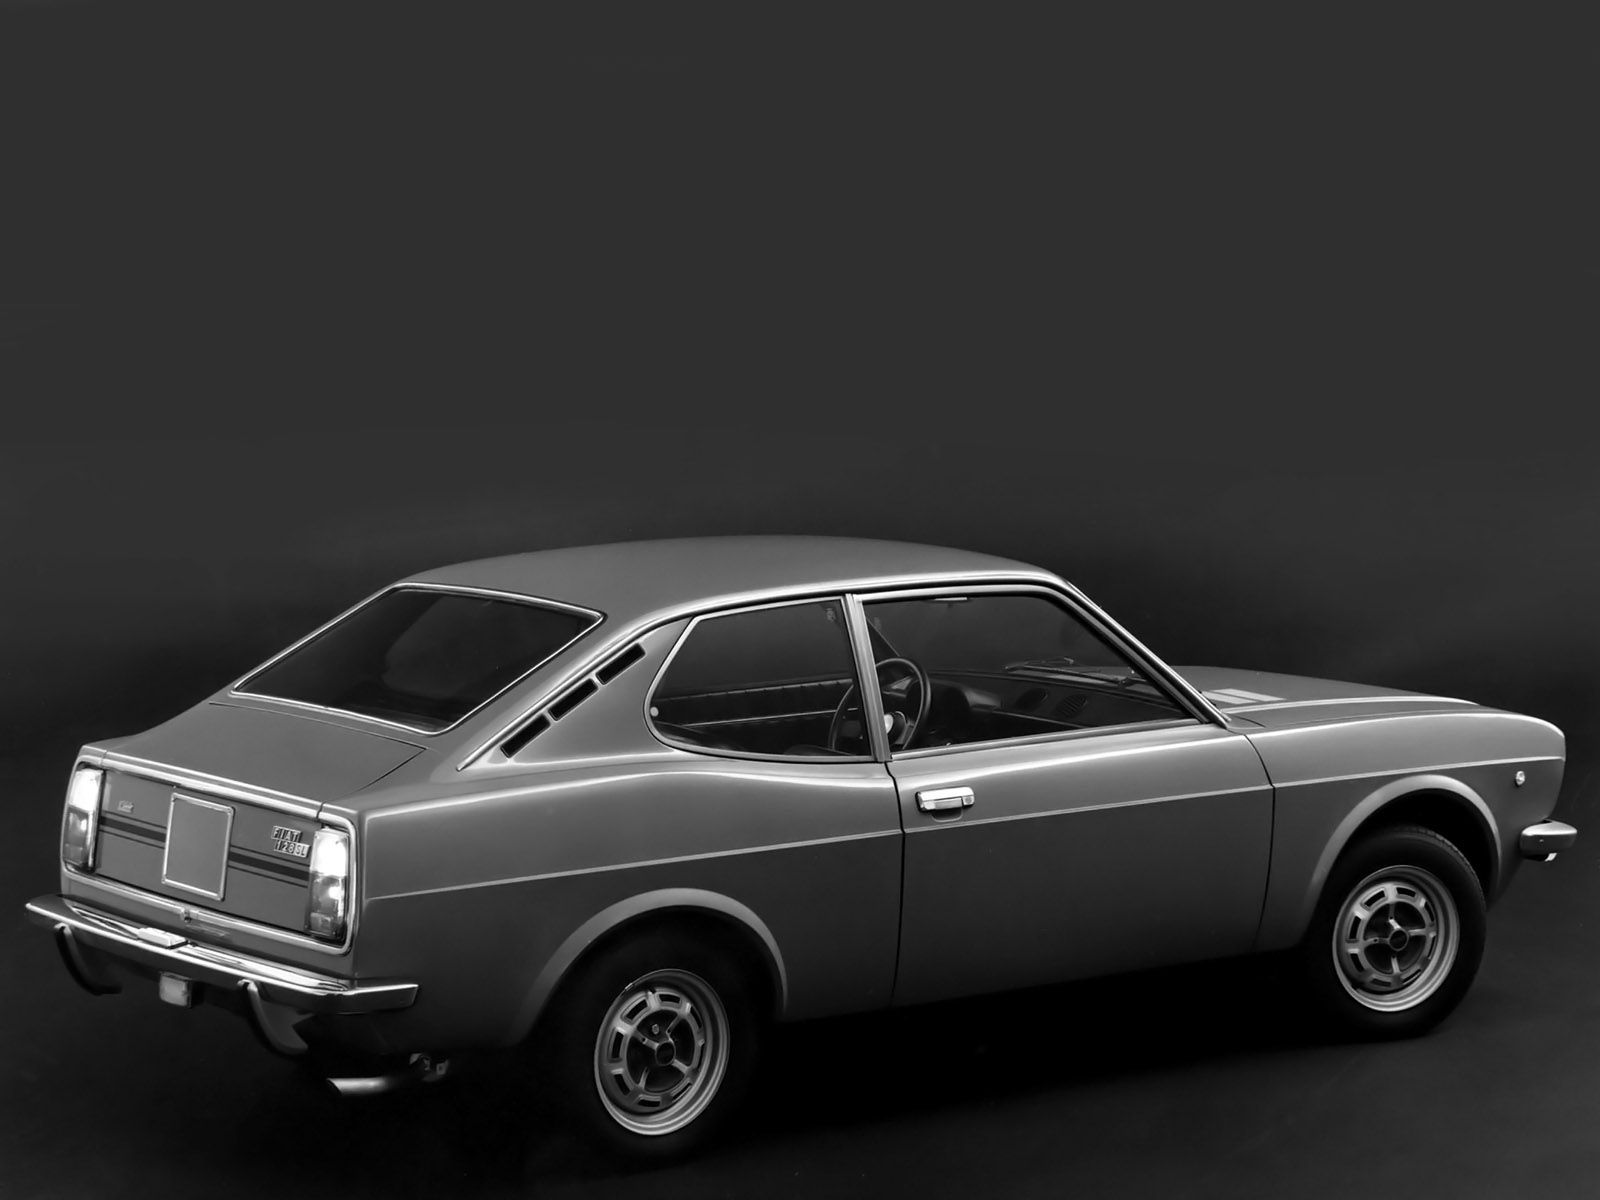 Black White Fiat 128 Coupe Sl 1971 With Images Fiat 128